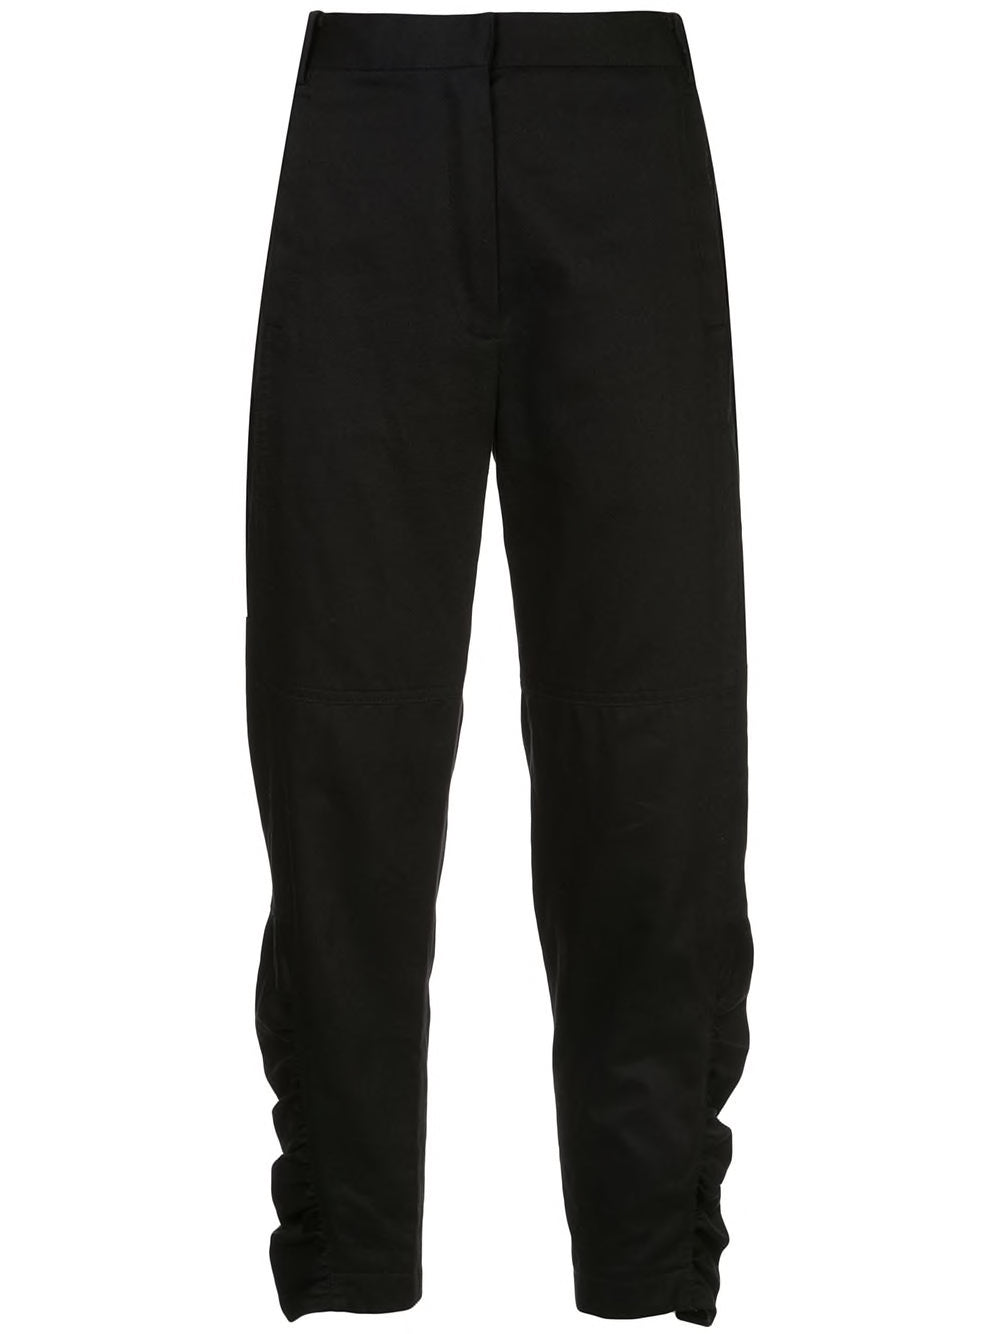 Chino Ruched Pants - Black